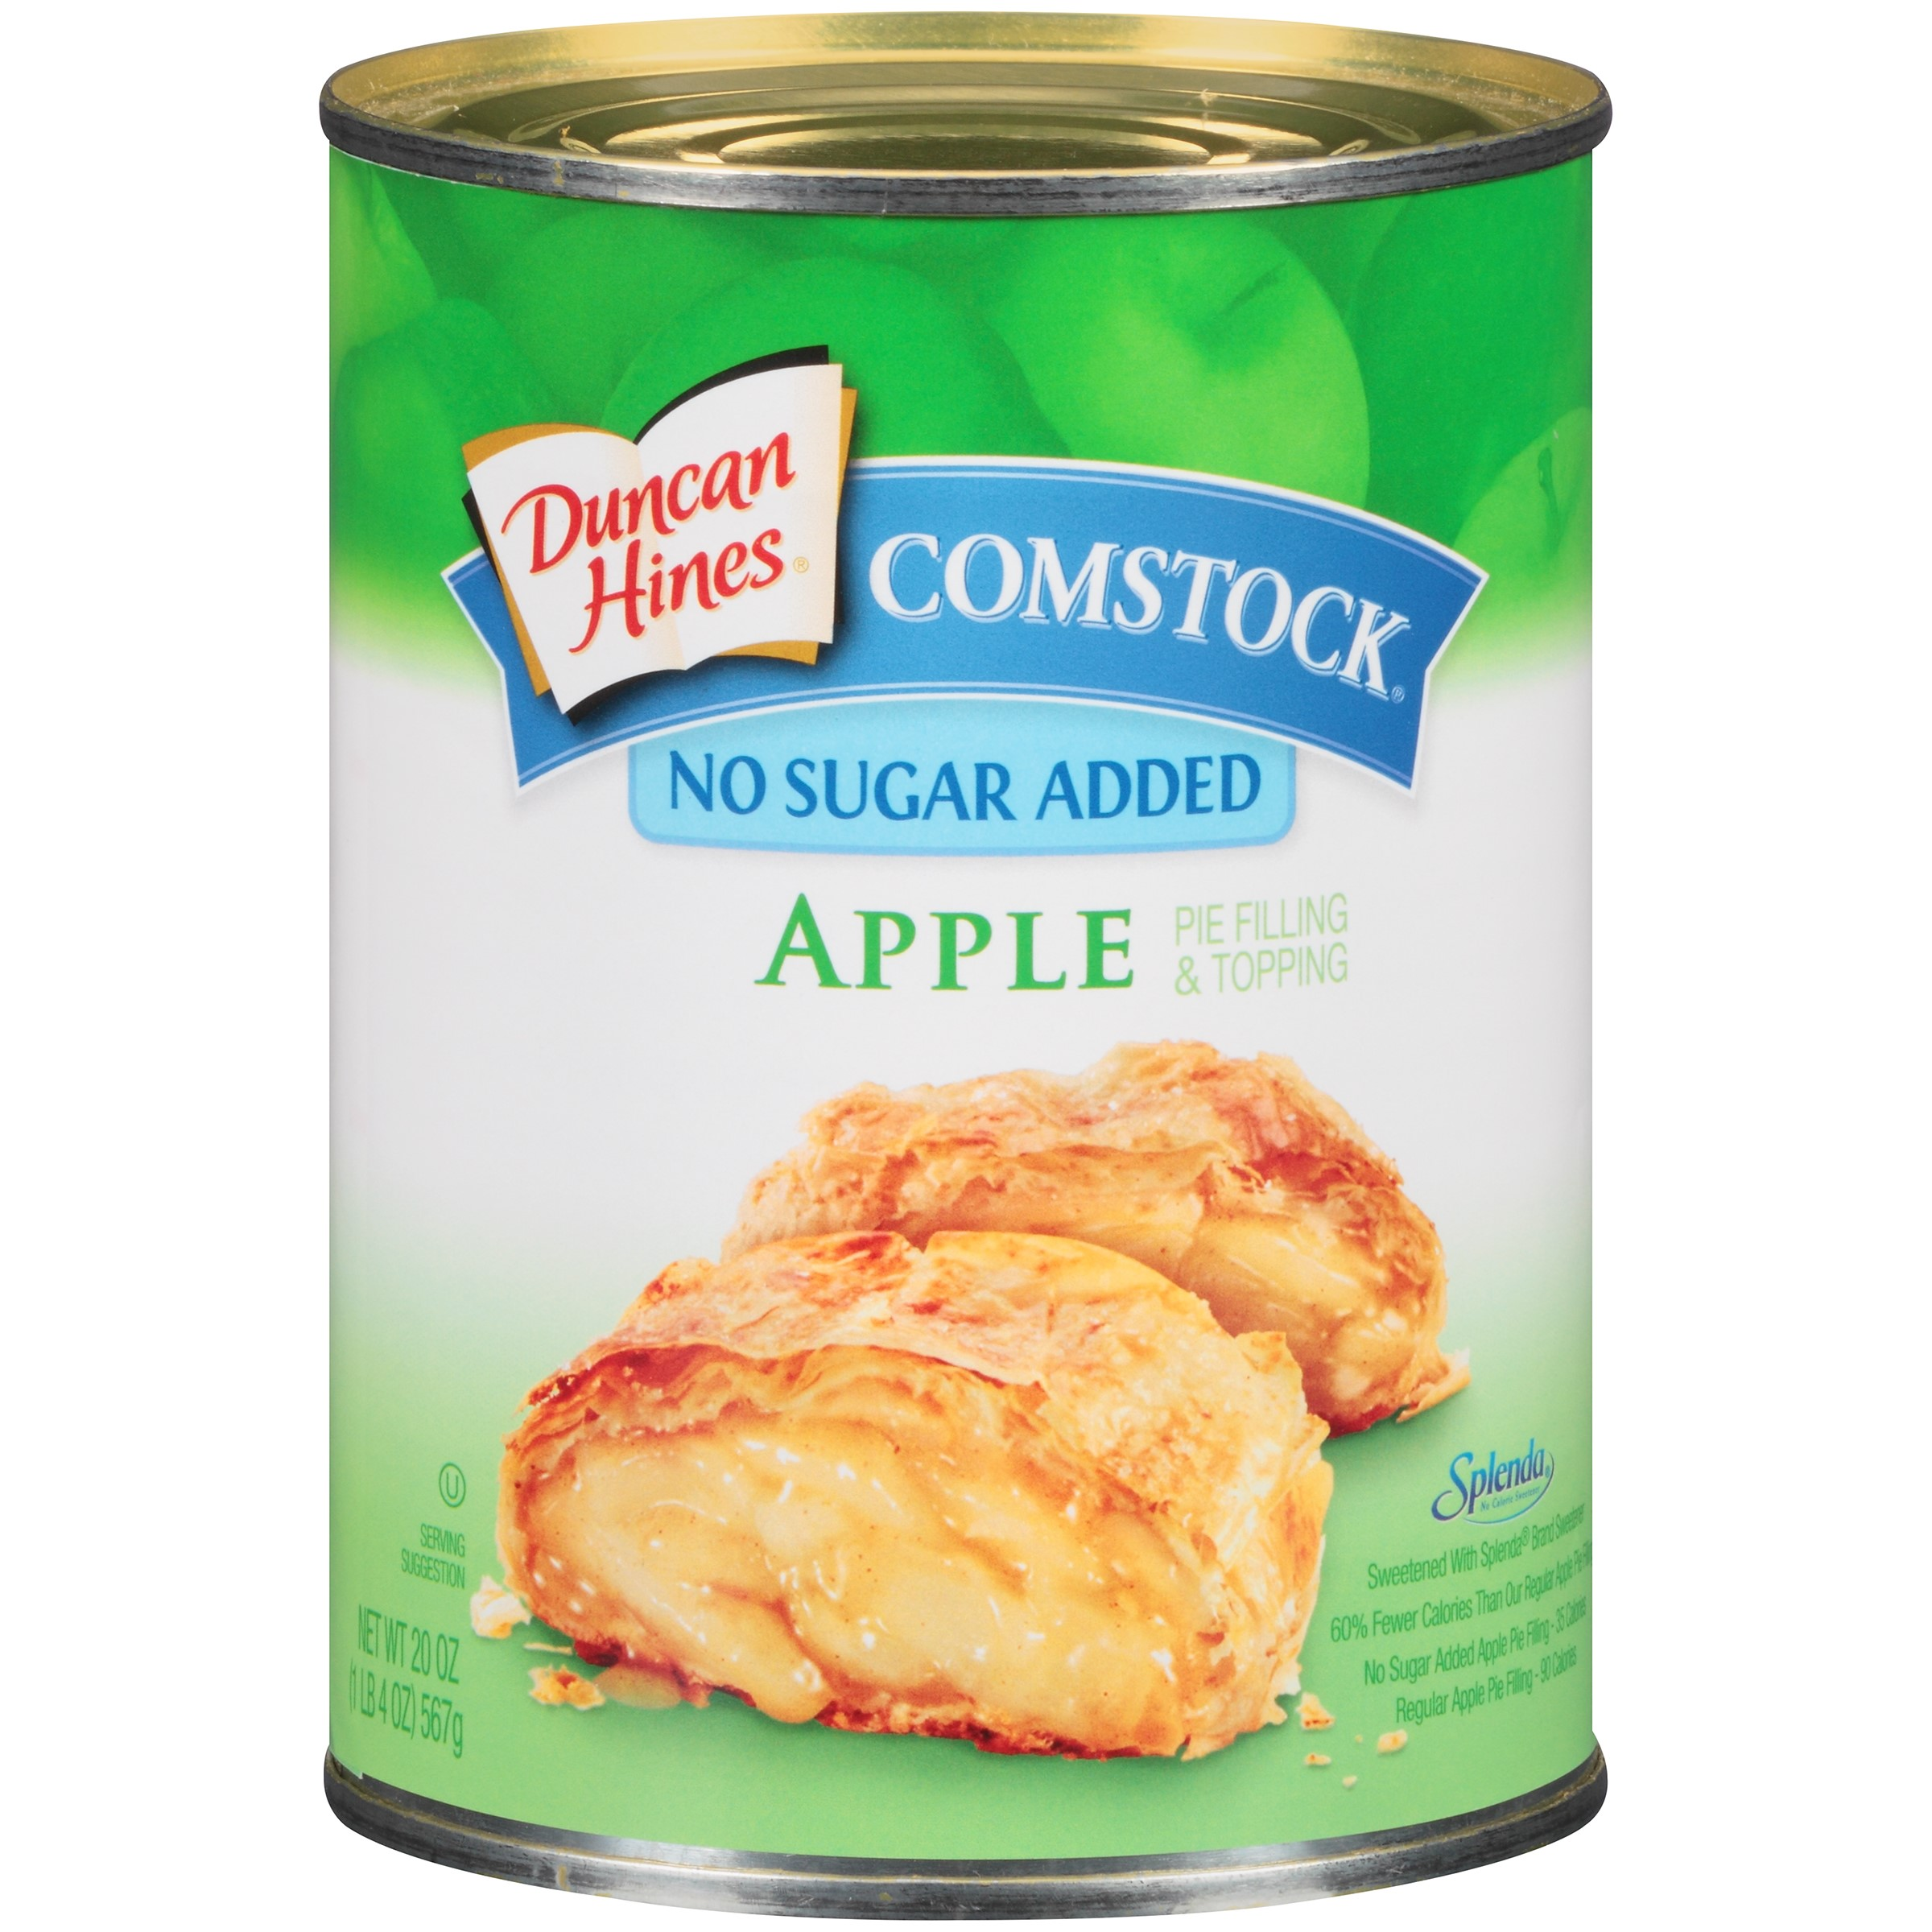 Duncan Hines Comstock No Sugar Added Apple Pie Filling & Topping 20 oz. can by Pinnacle Foods